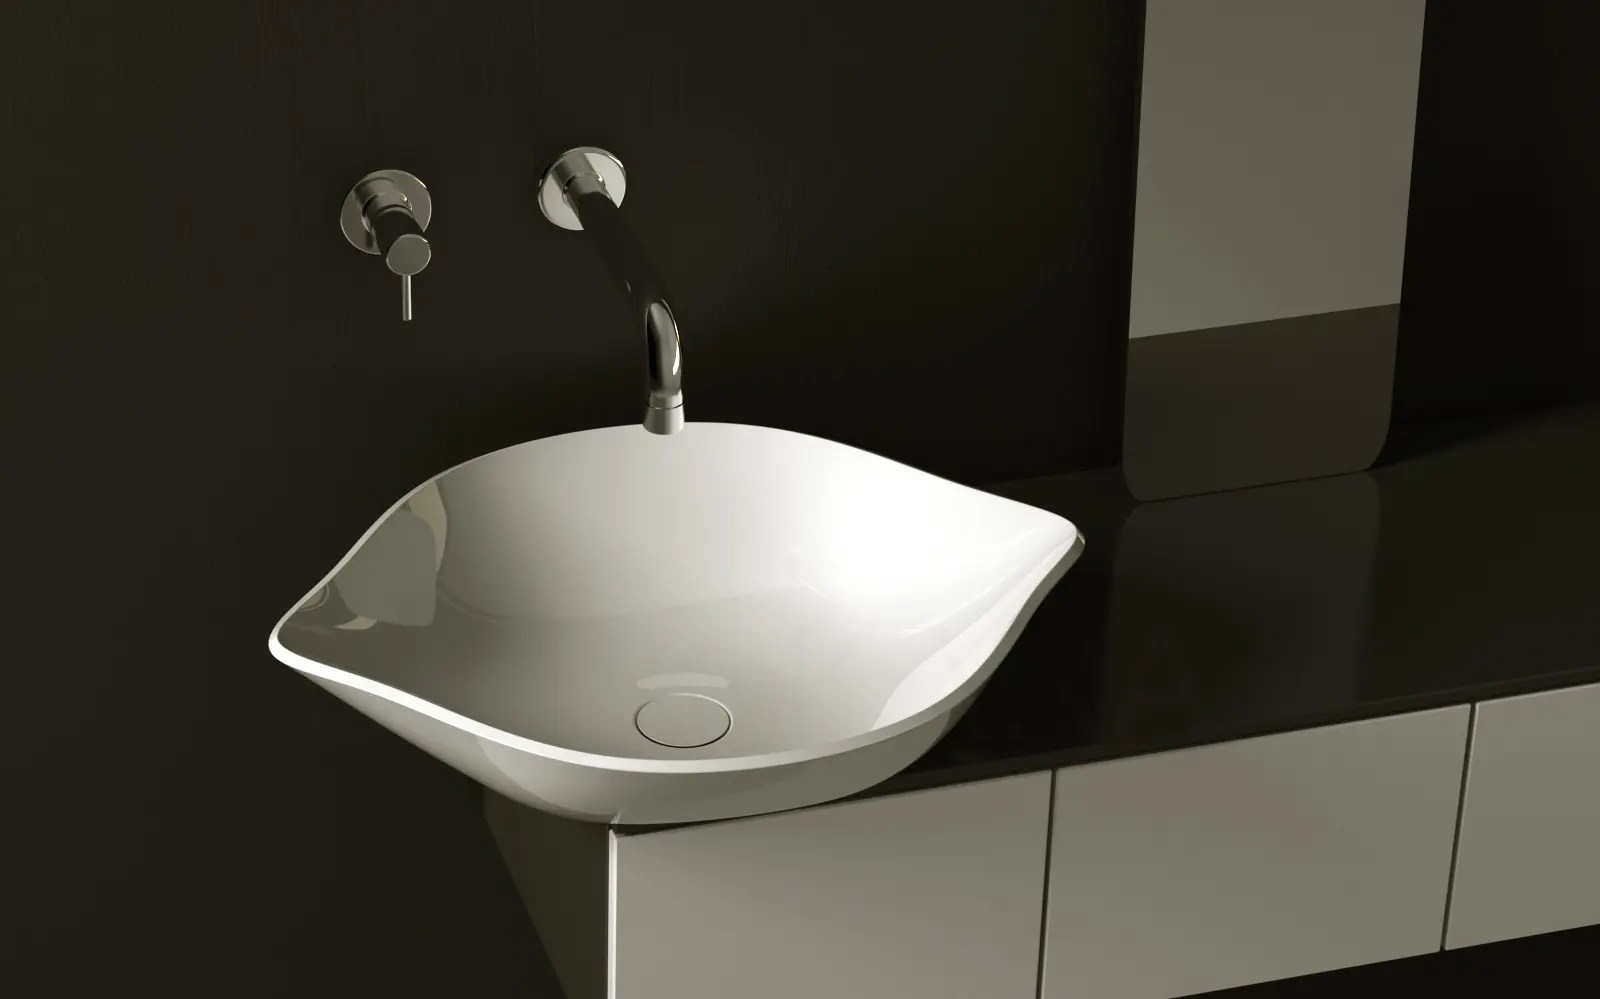 Cool FruitInspired Bathroom Sinks  Lemon by Cenk Kara